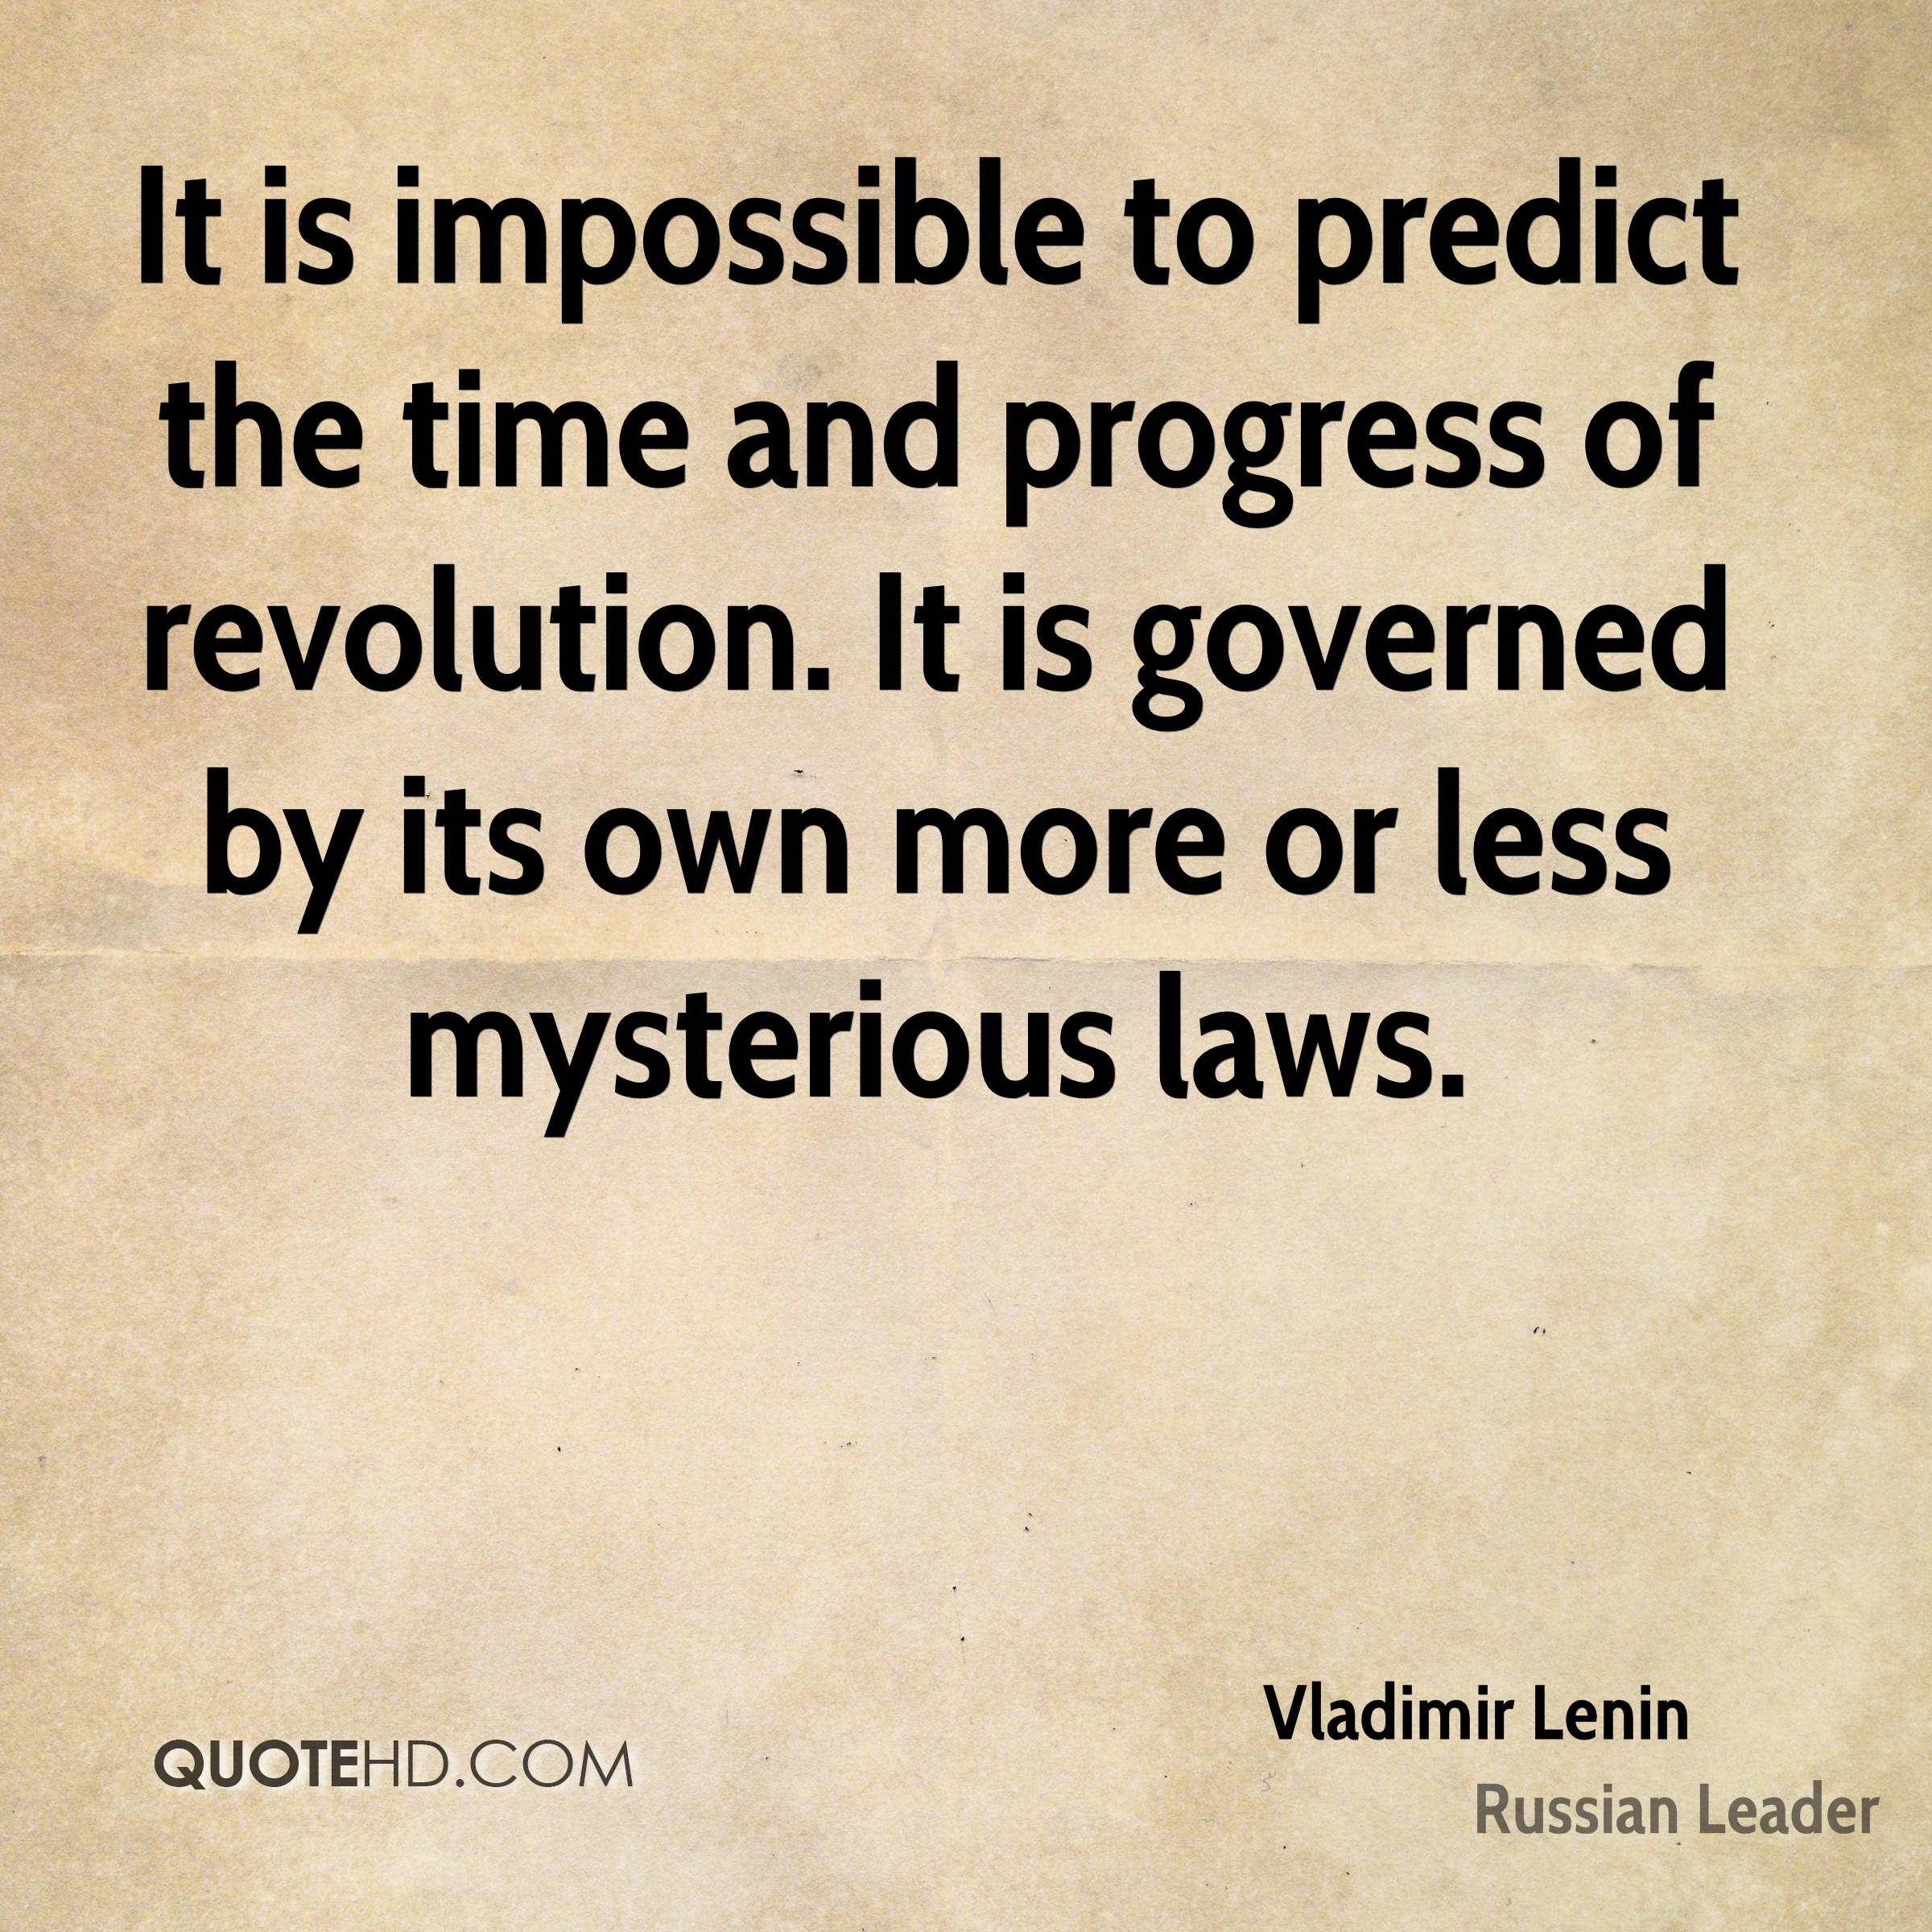 It is impossible to predict the time and progress of revolution. It is governed by its own more or less mysterious laws.